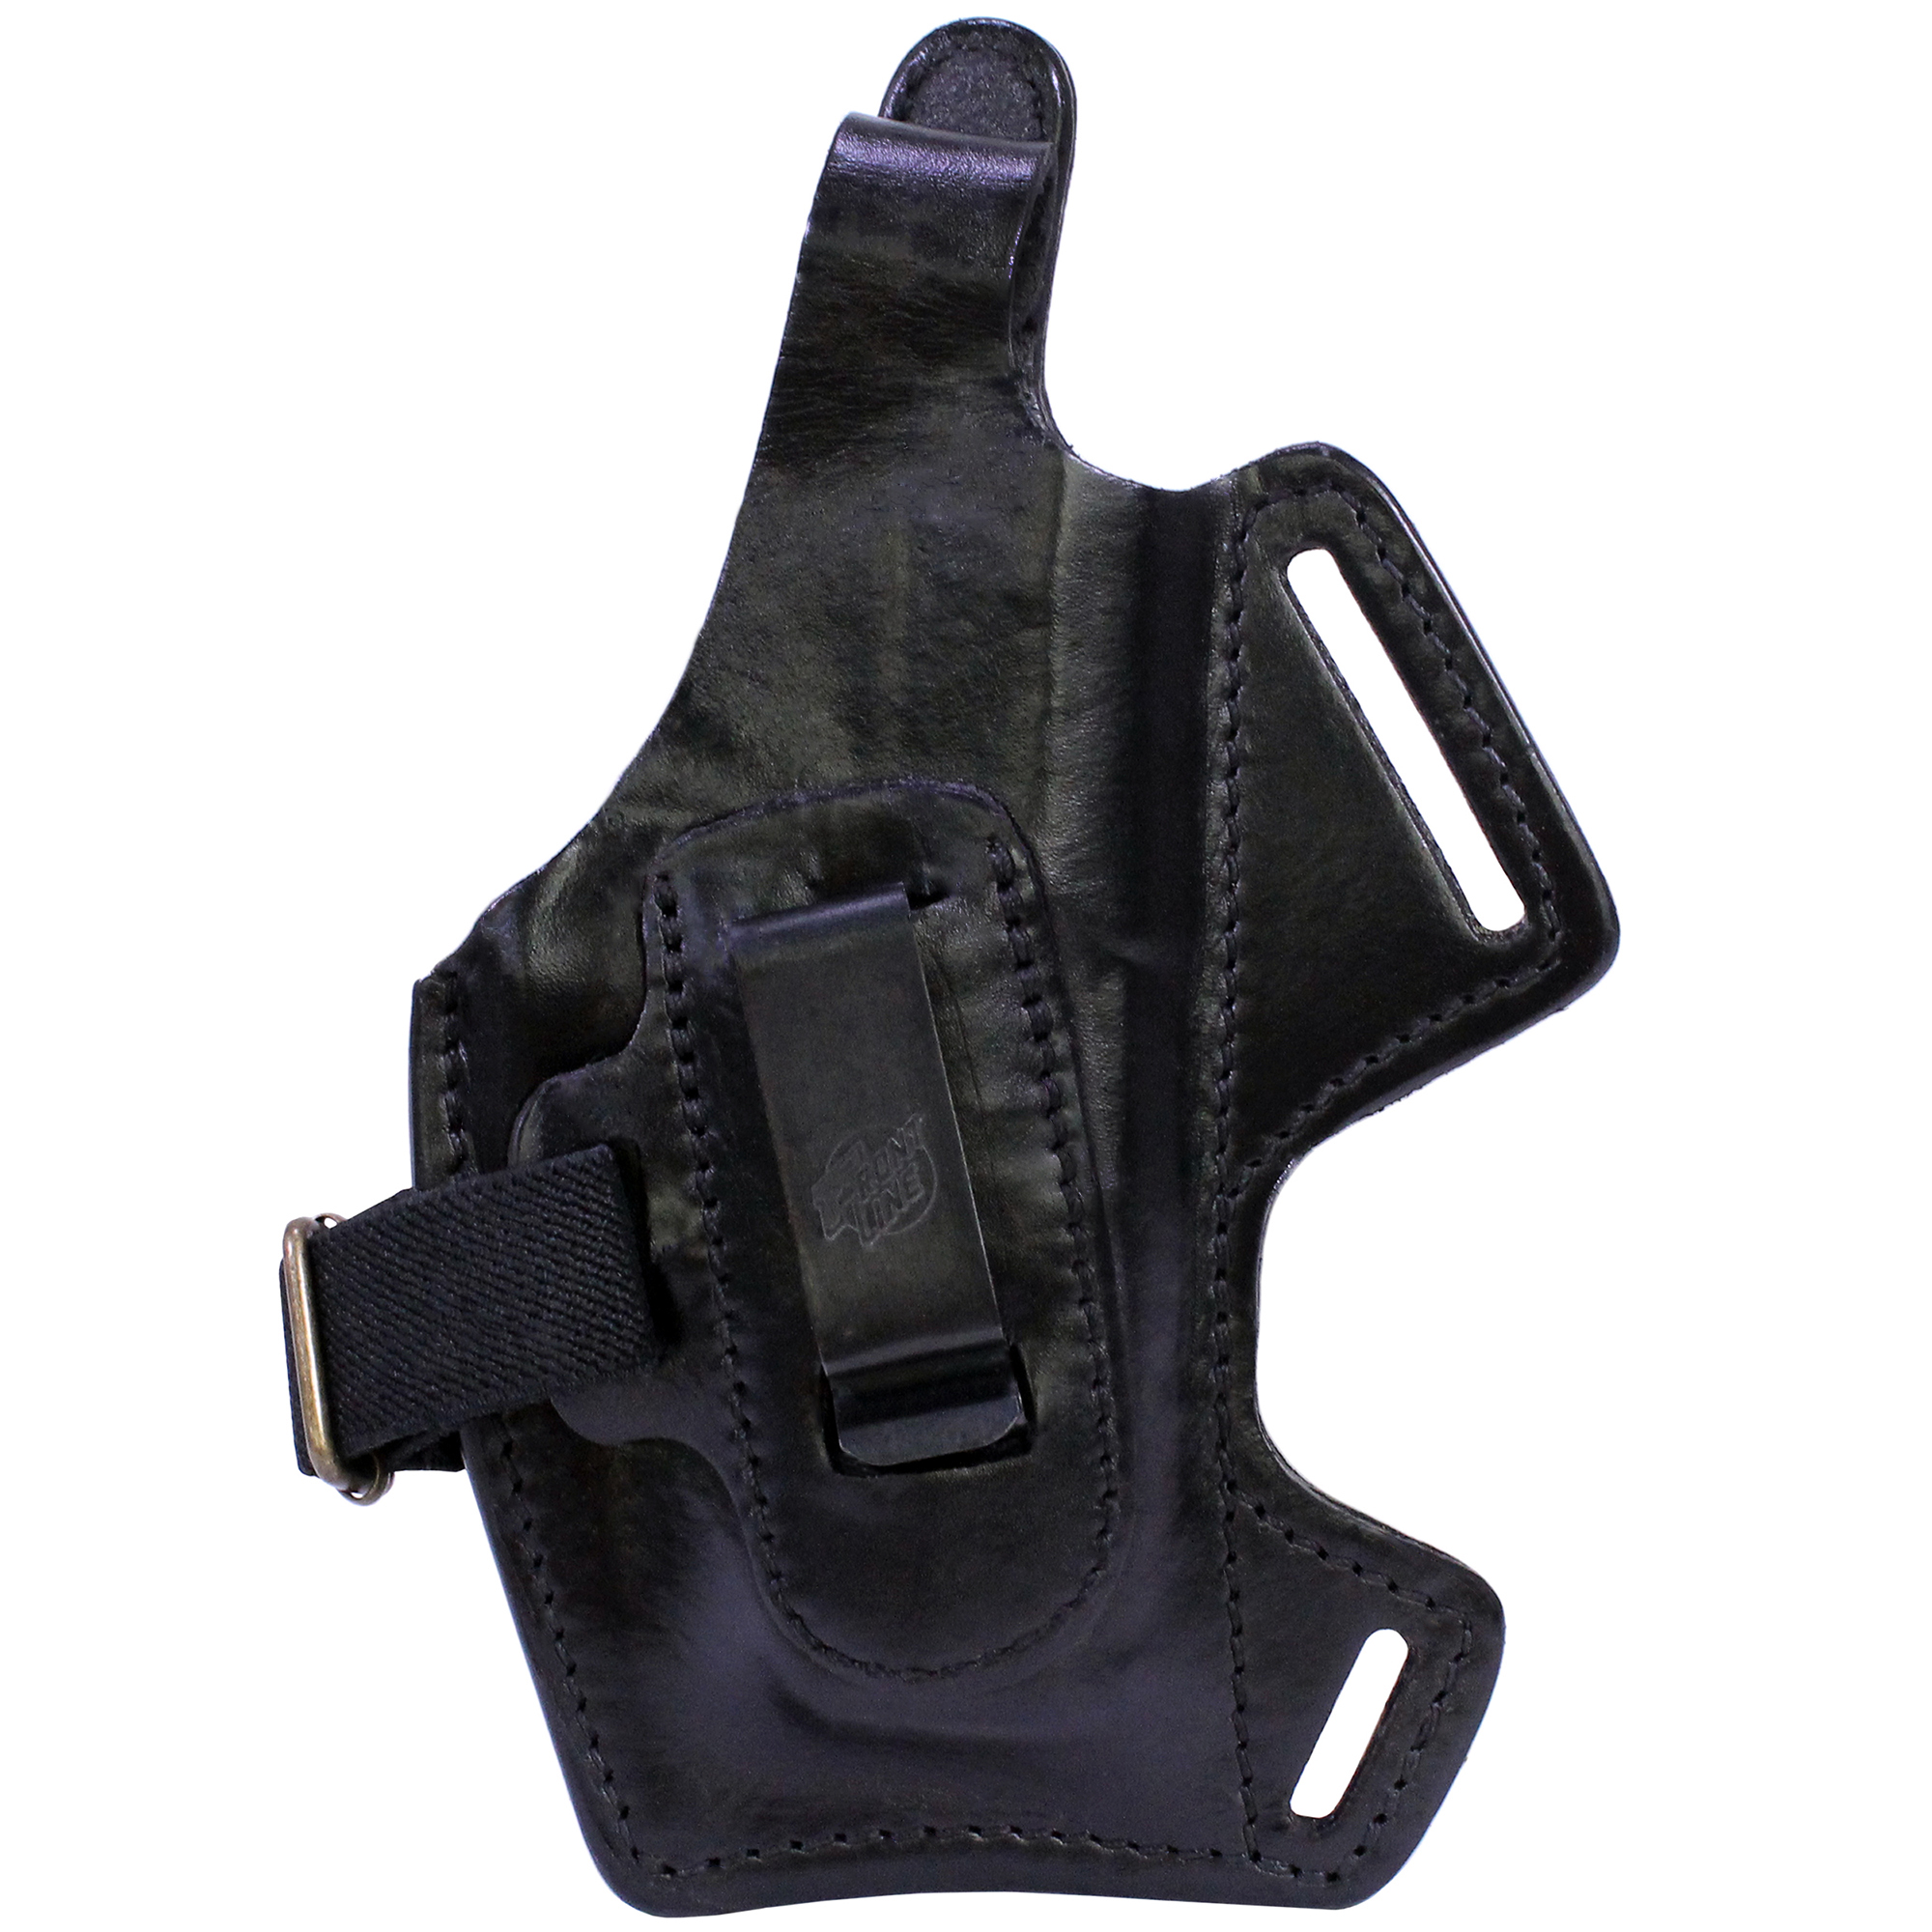 Frontline Fast Draw 5 Way Leather Shoulder Holster H&K P2000, Black, Right Hand